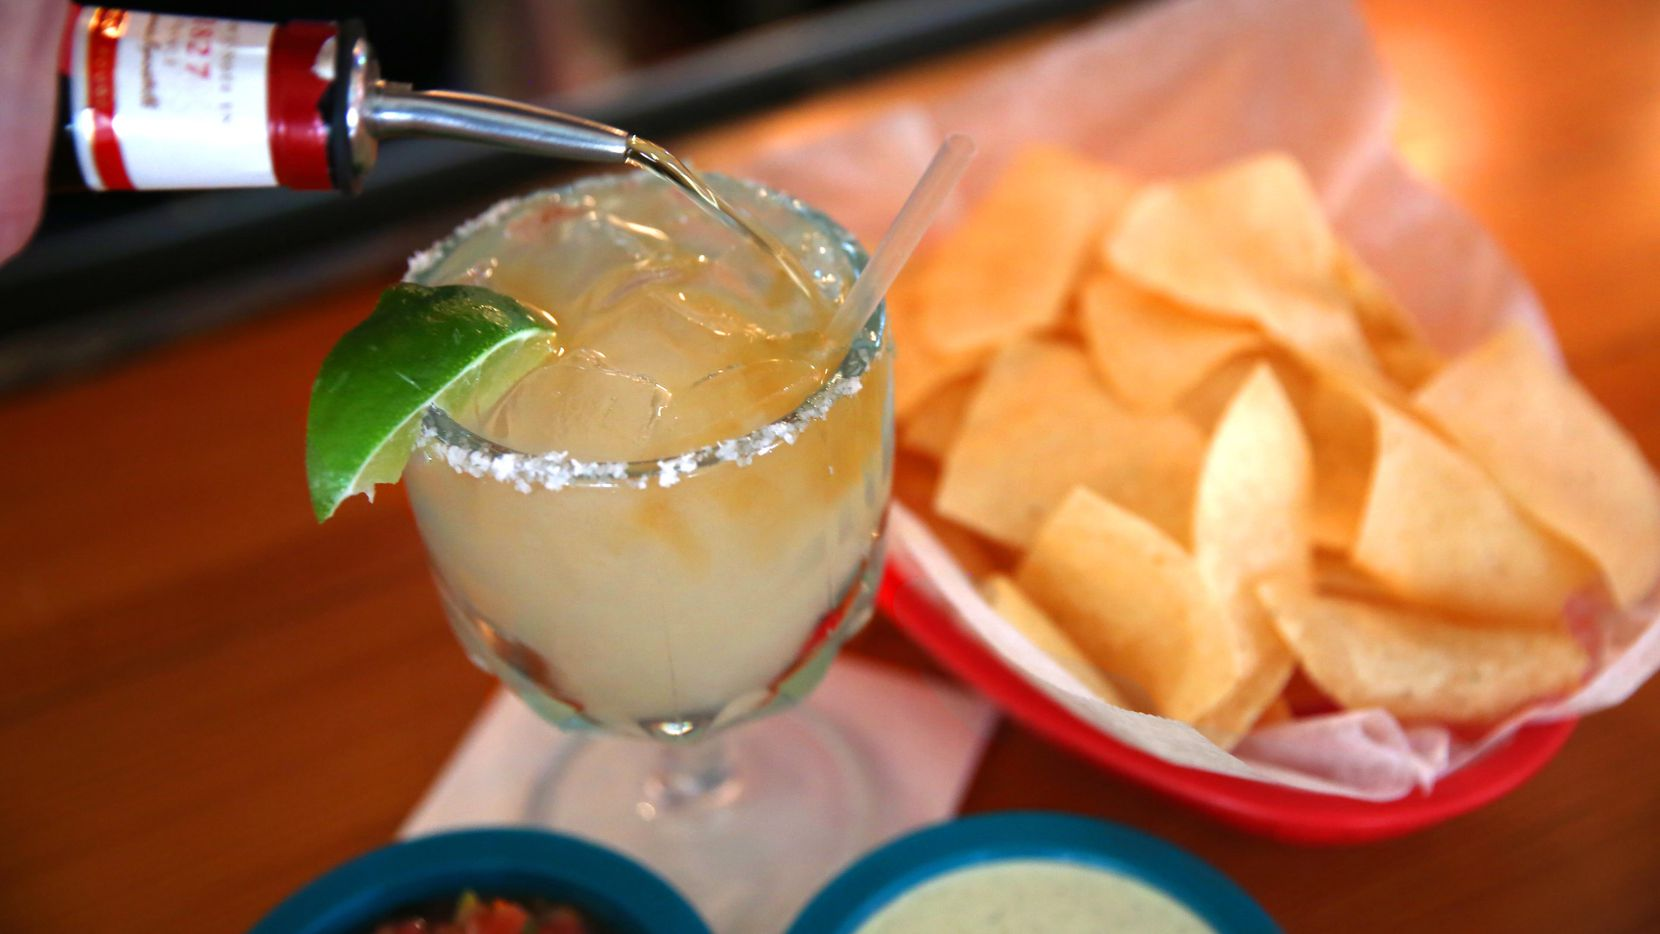 Every meal at Chuy's starts with chips and salsa. Margaritas are optional — but very popular.